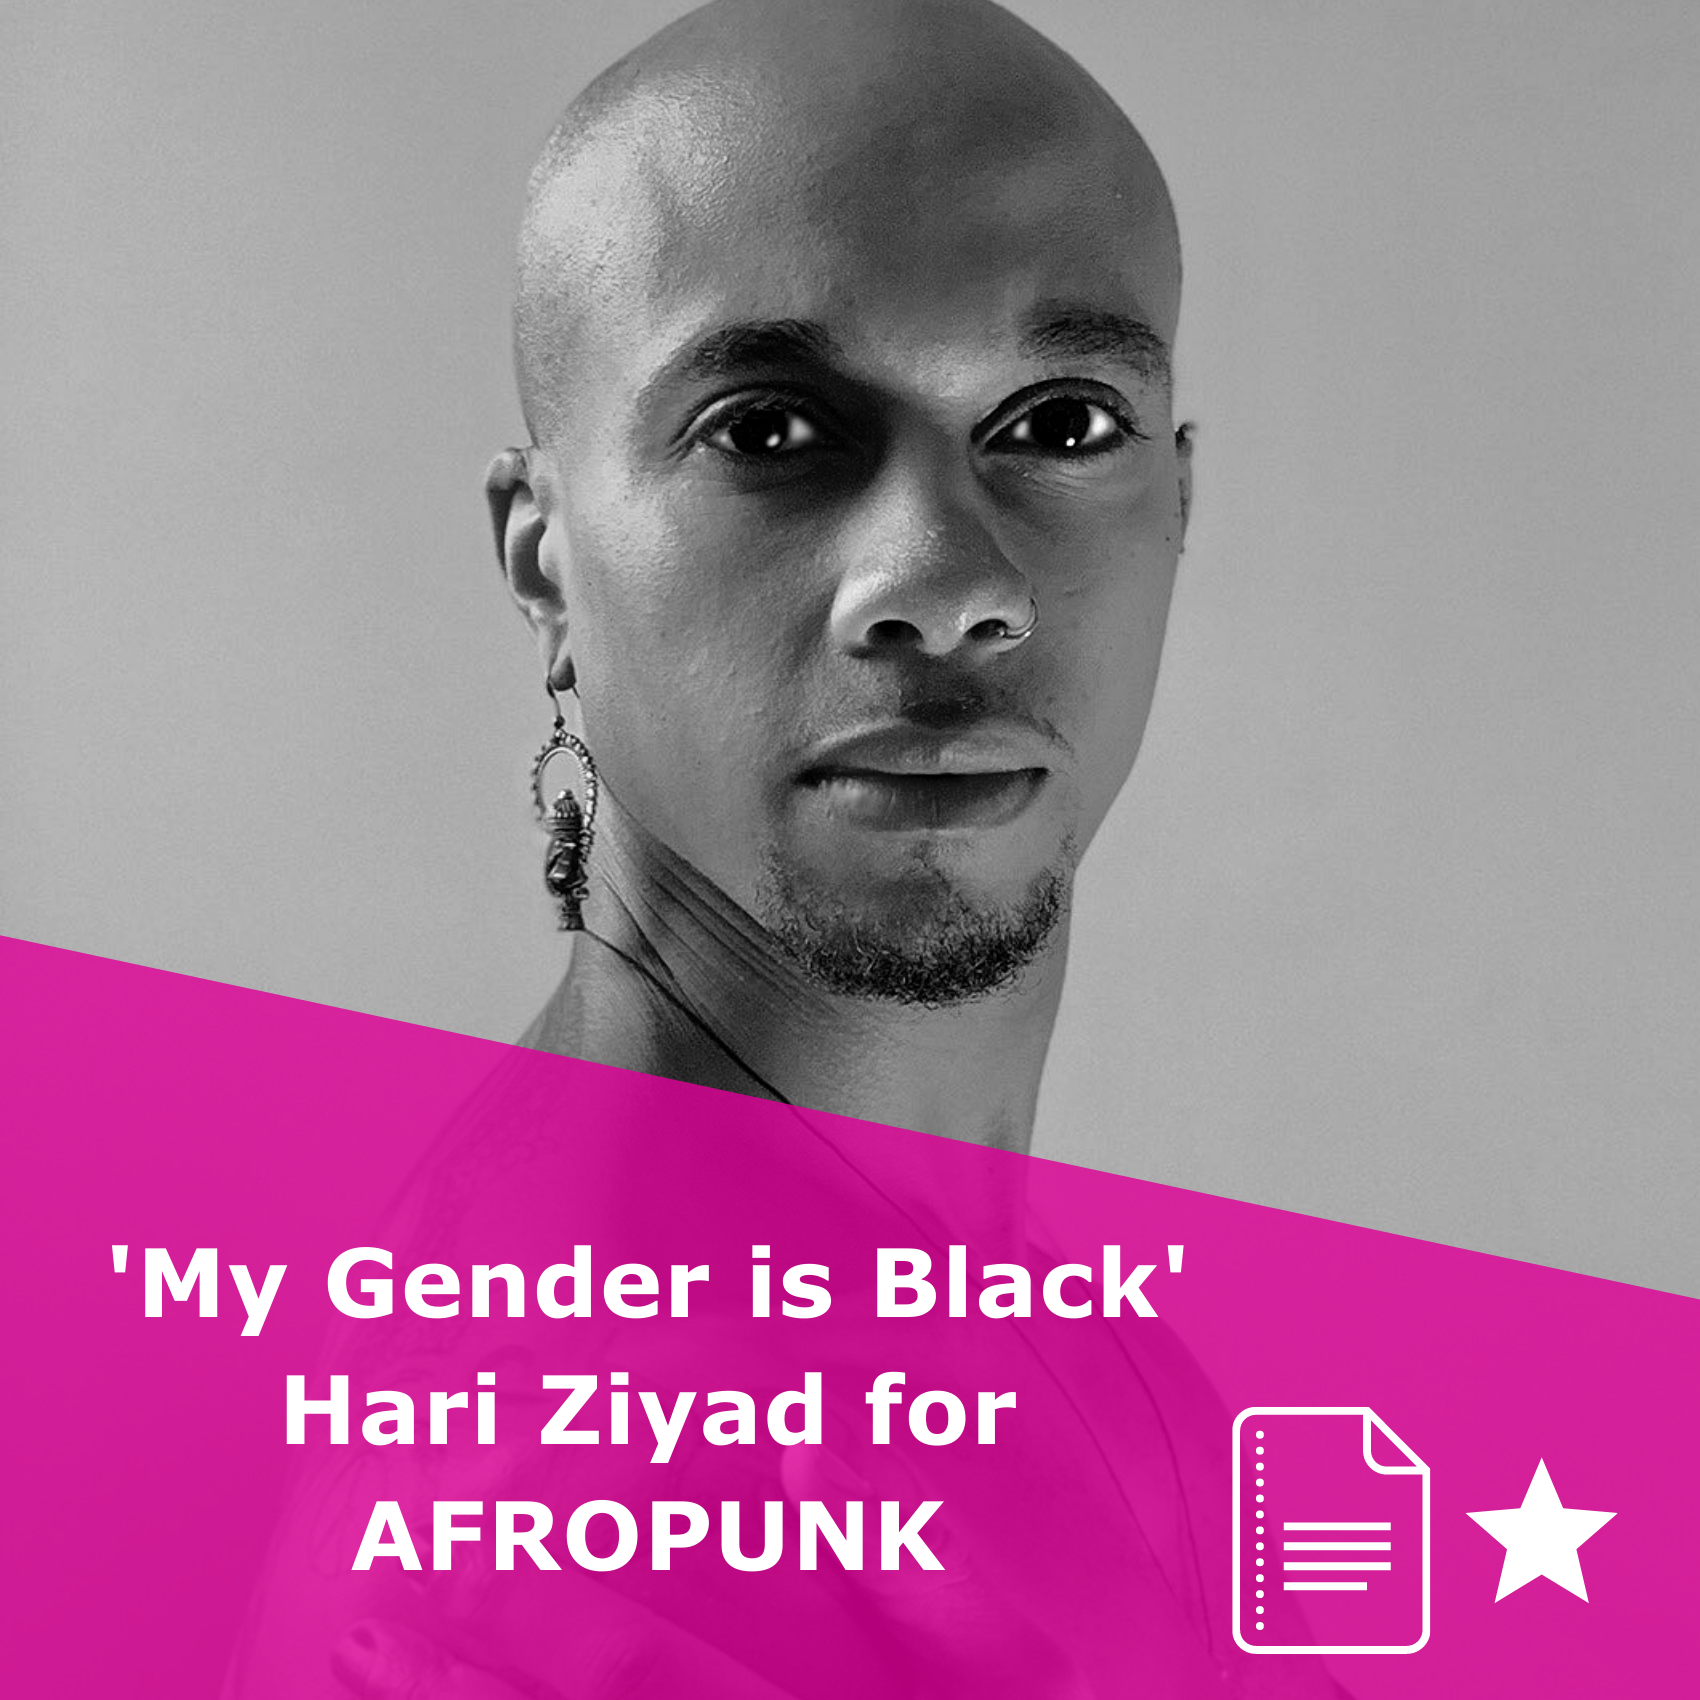 Picture of Hari Ziyad in black and white. Title 'My Gender is Black'. It is an article, rated one star.